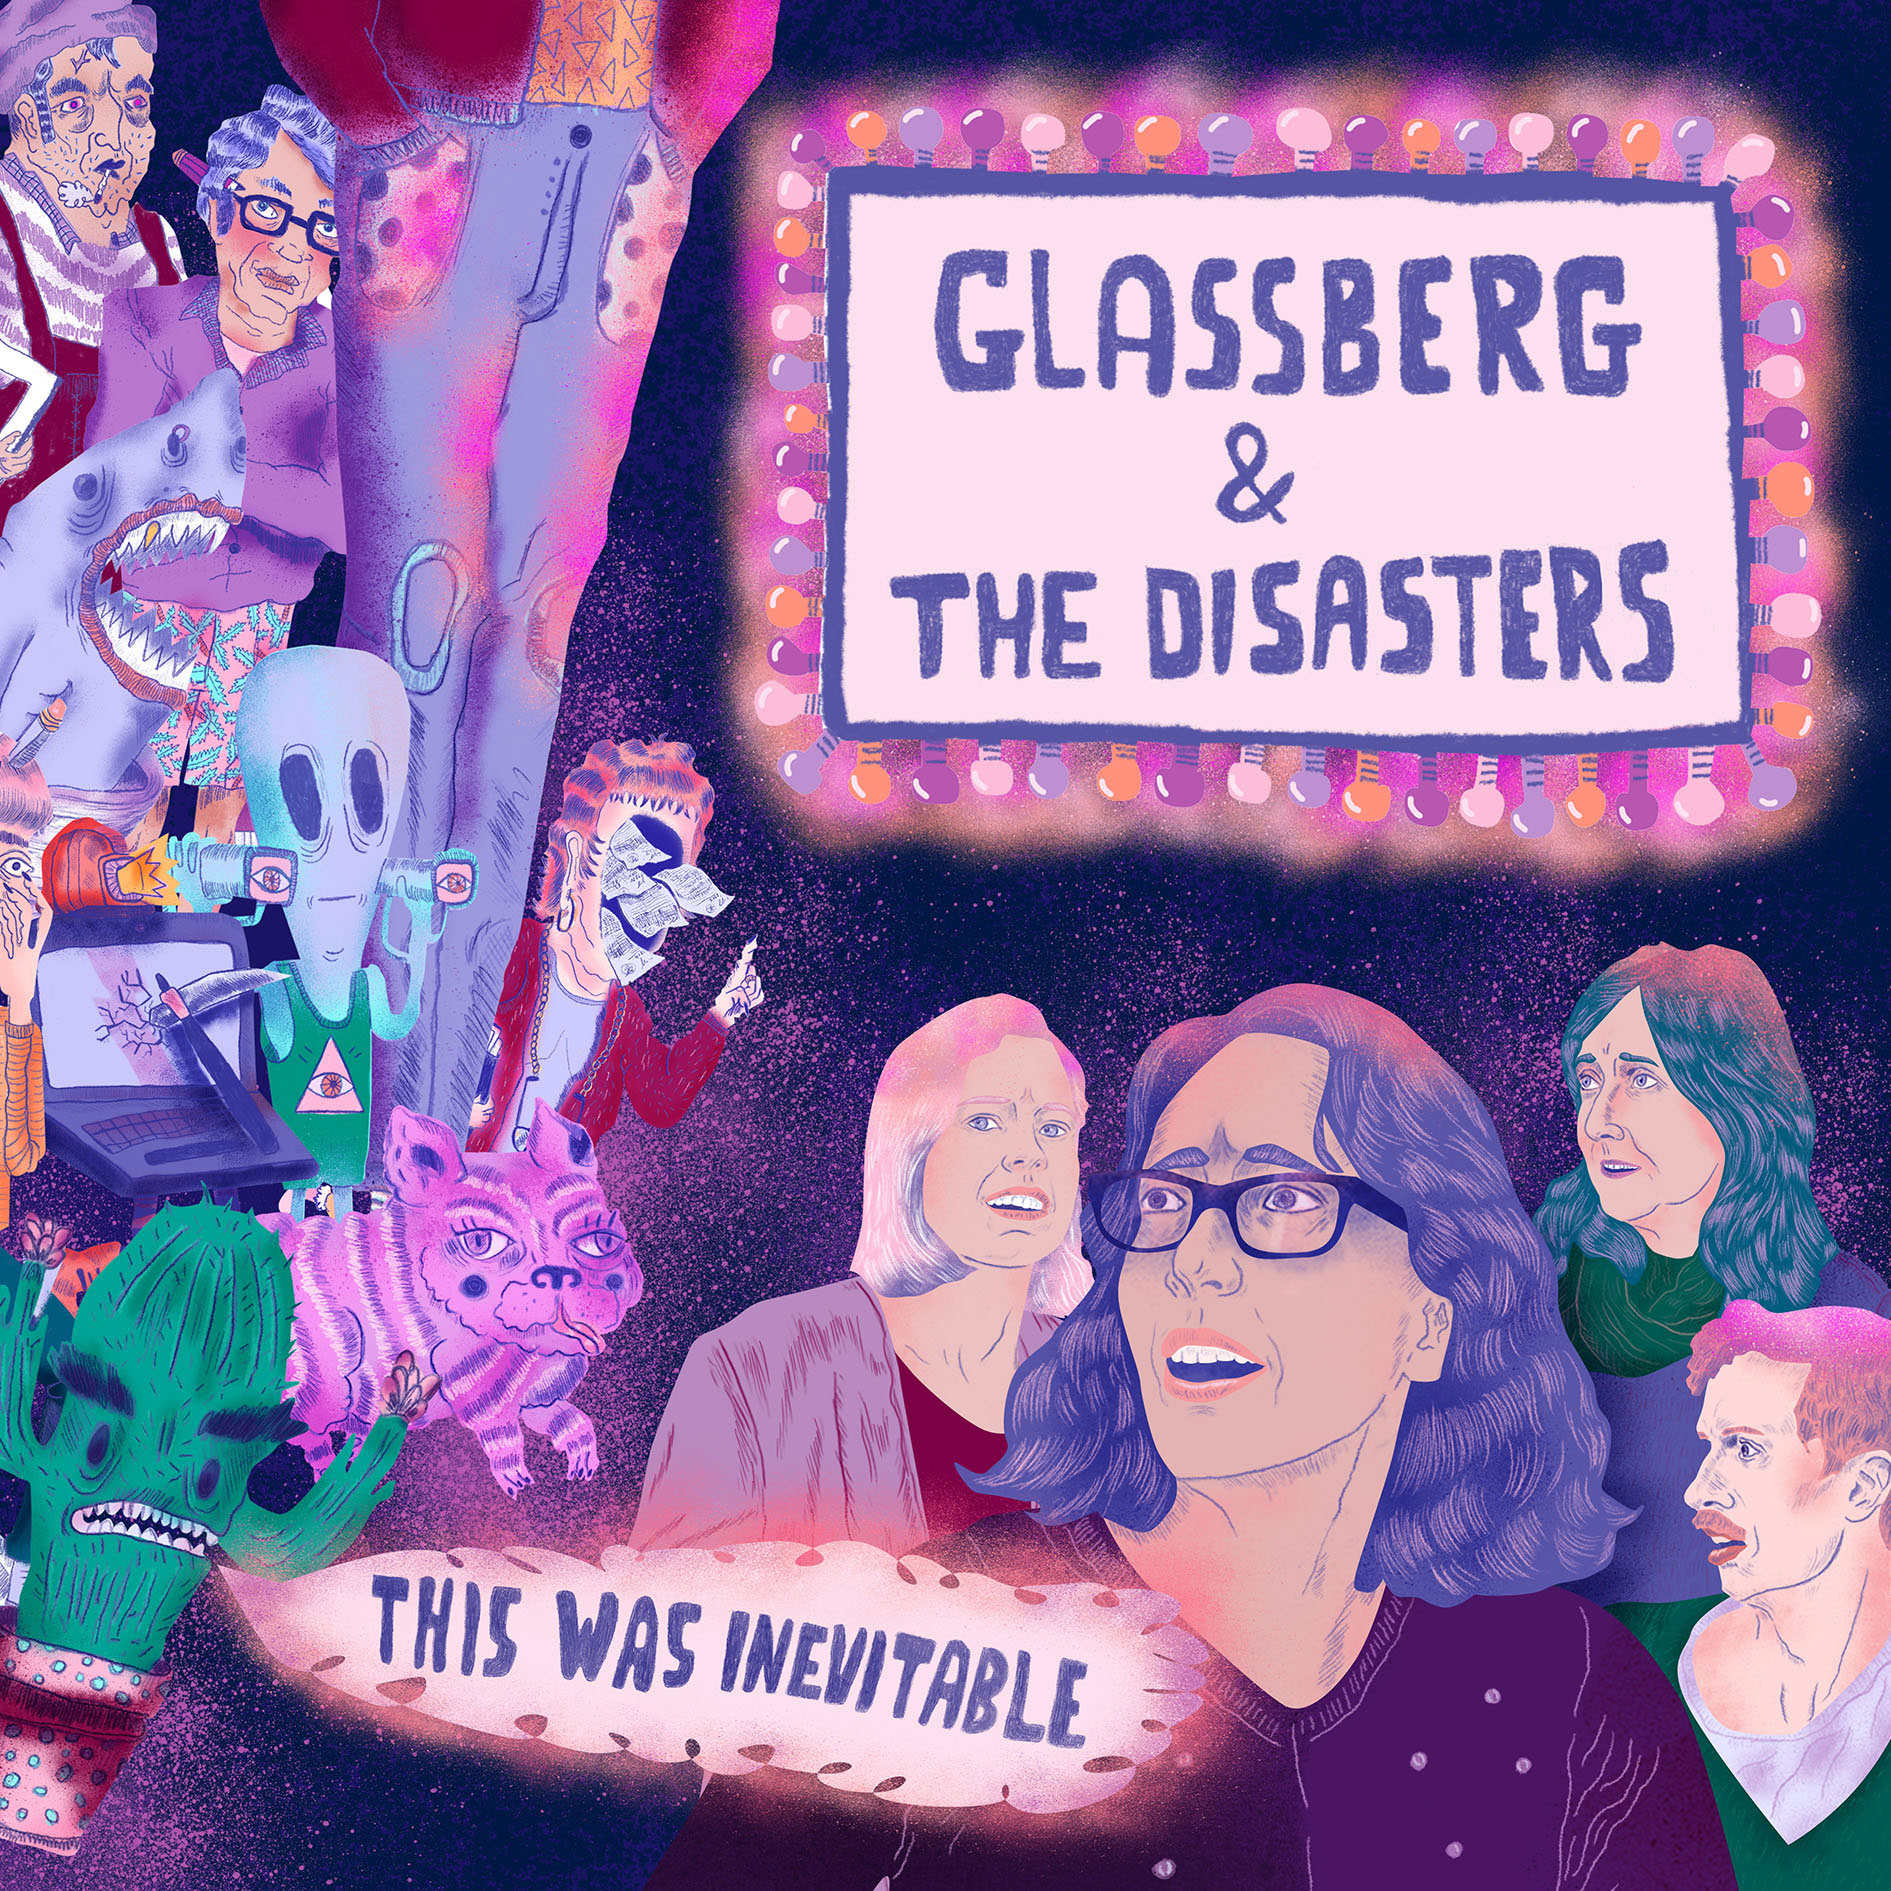 Glassberg & The Disasters Album Art